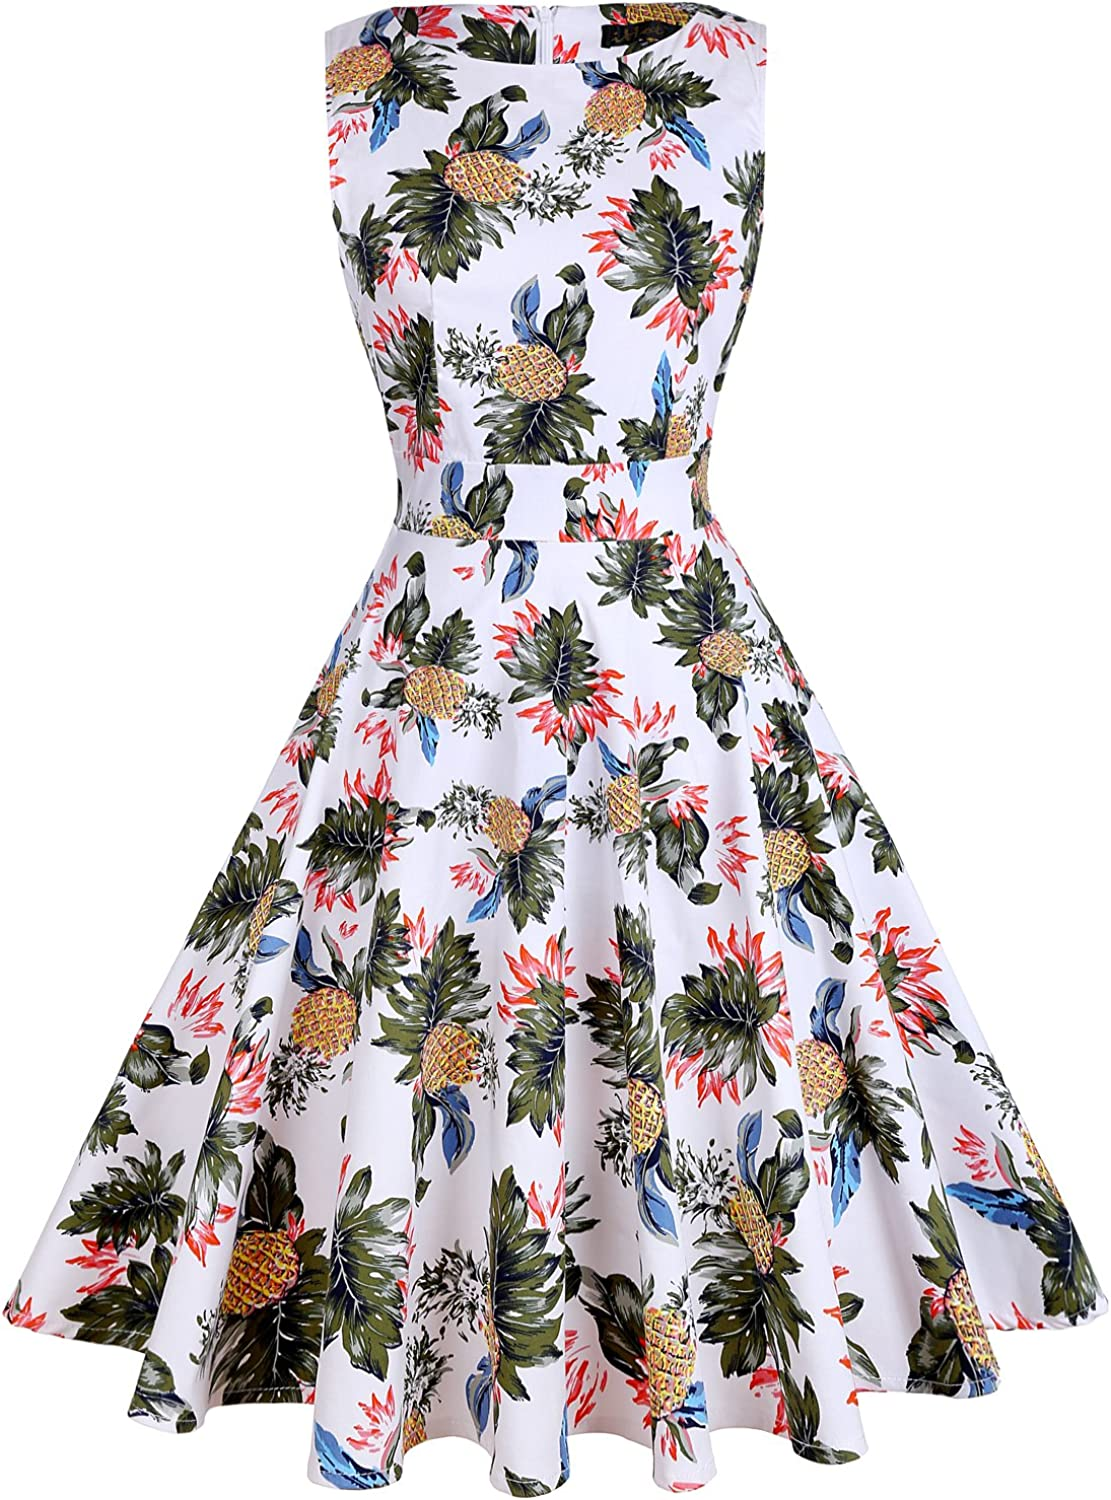 Ihot Vintage 1950's Floral Spring Summer Dress Garden Picnic Party Cocktail Dress